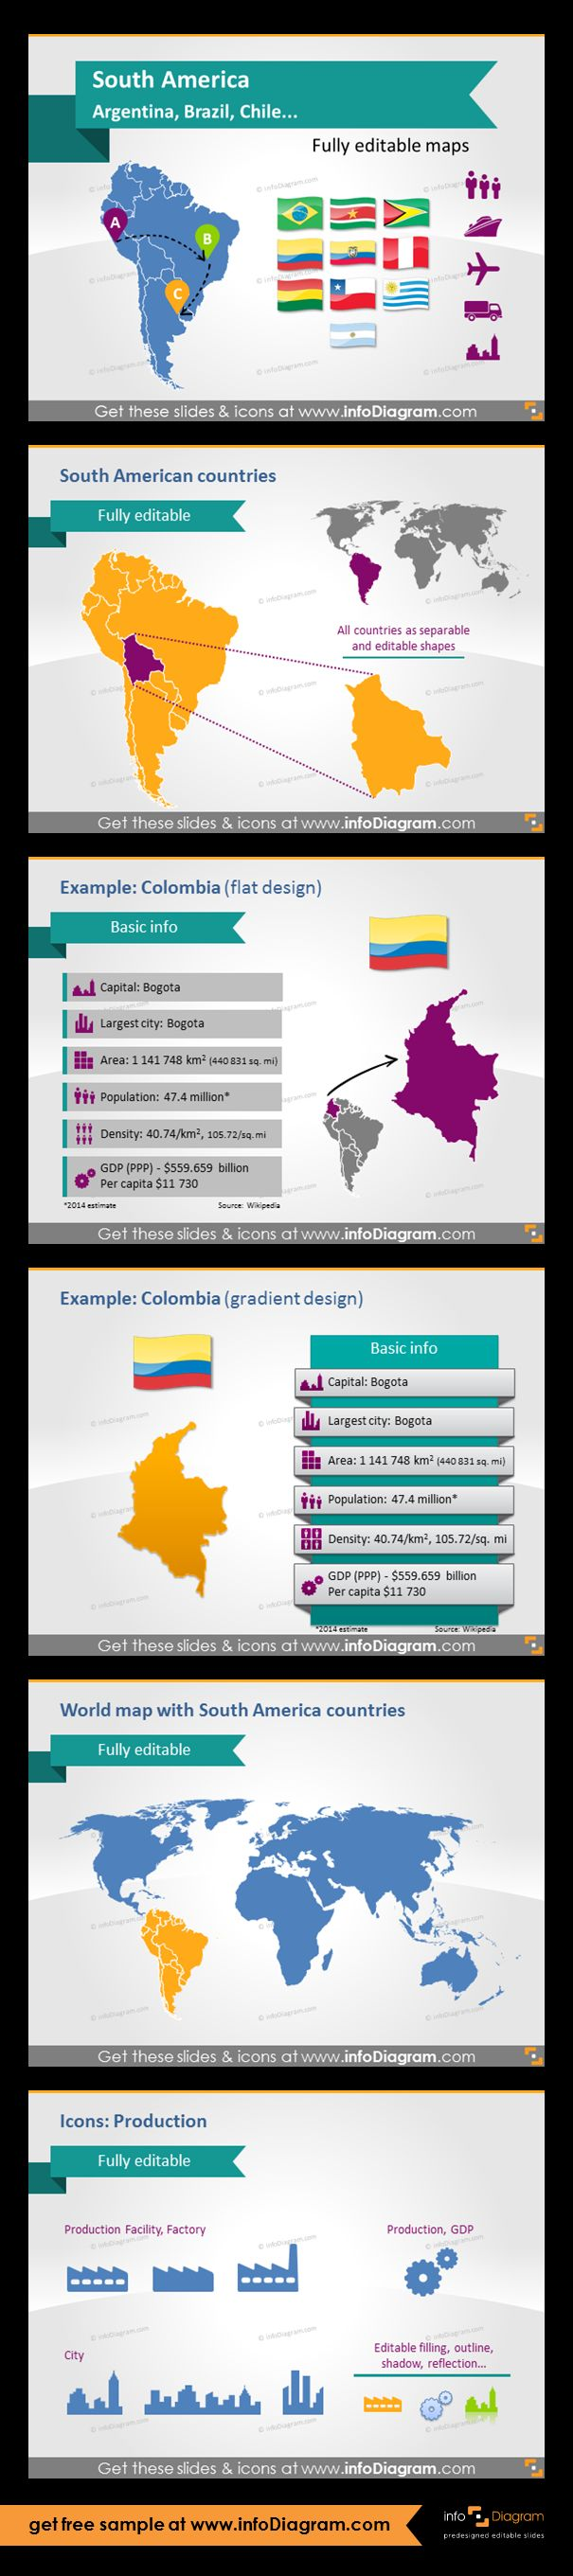 South America countries - editable PowerPoint maps, localization and transport icons, country statistics. Fully editable maps, icons, arrows. South America map, Colombia map with basic information, South America countries on the world map. Production pictograms: Factory icon, Production facility icon, Production gears icon.